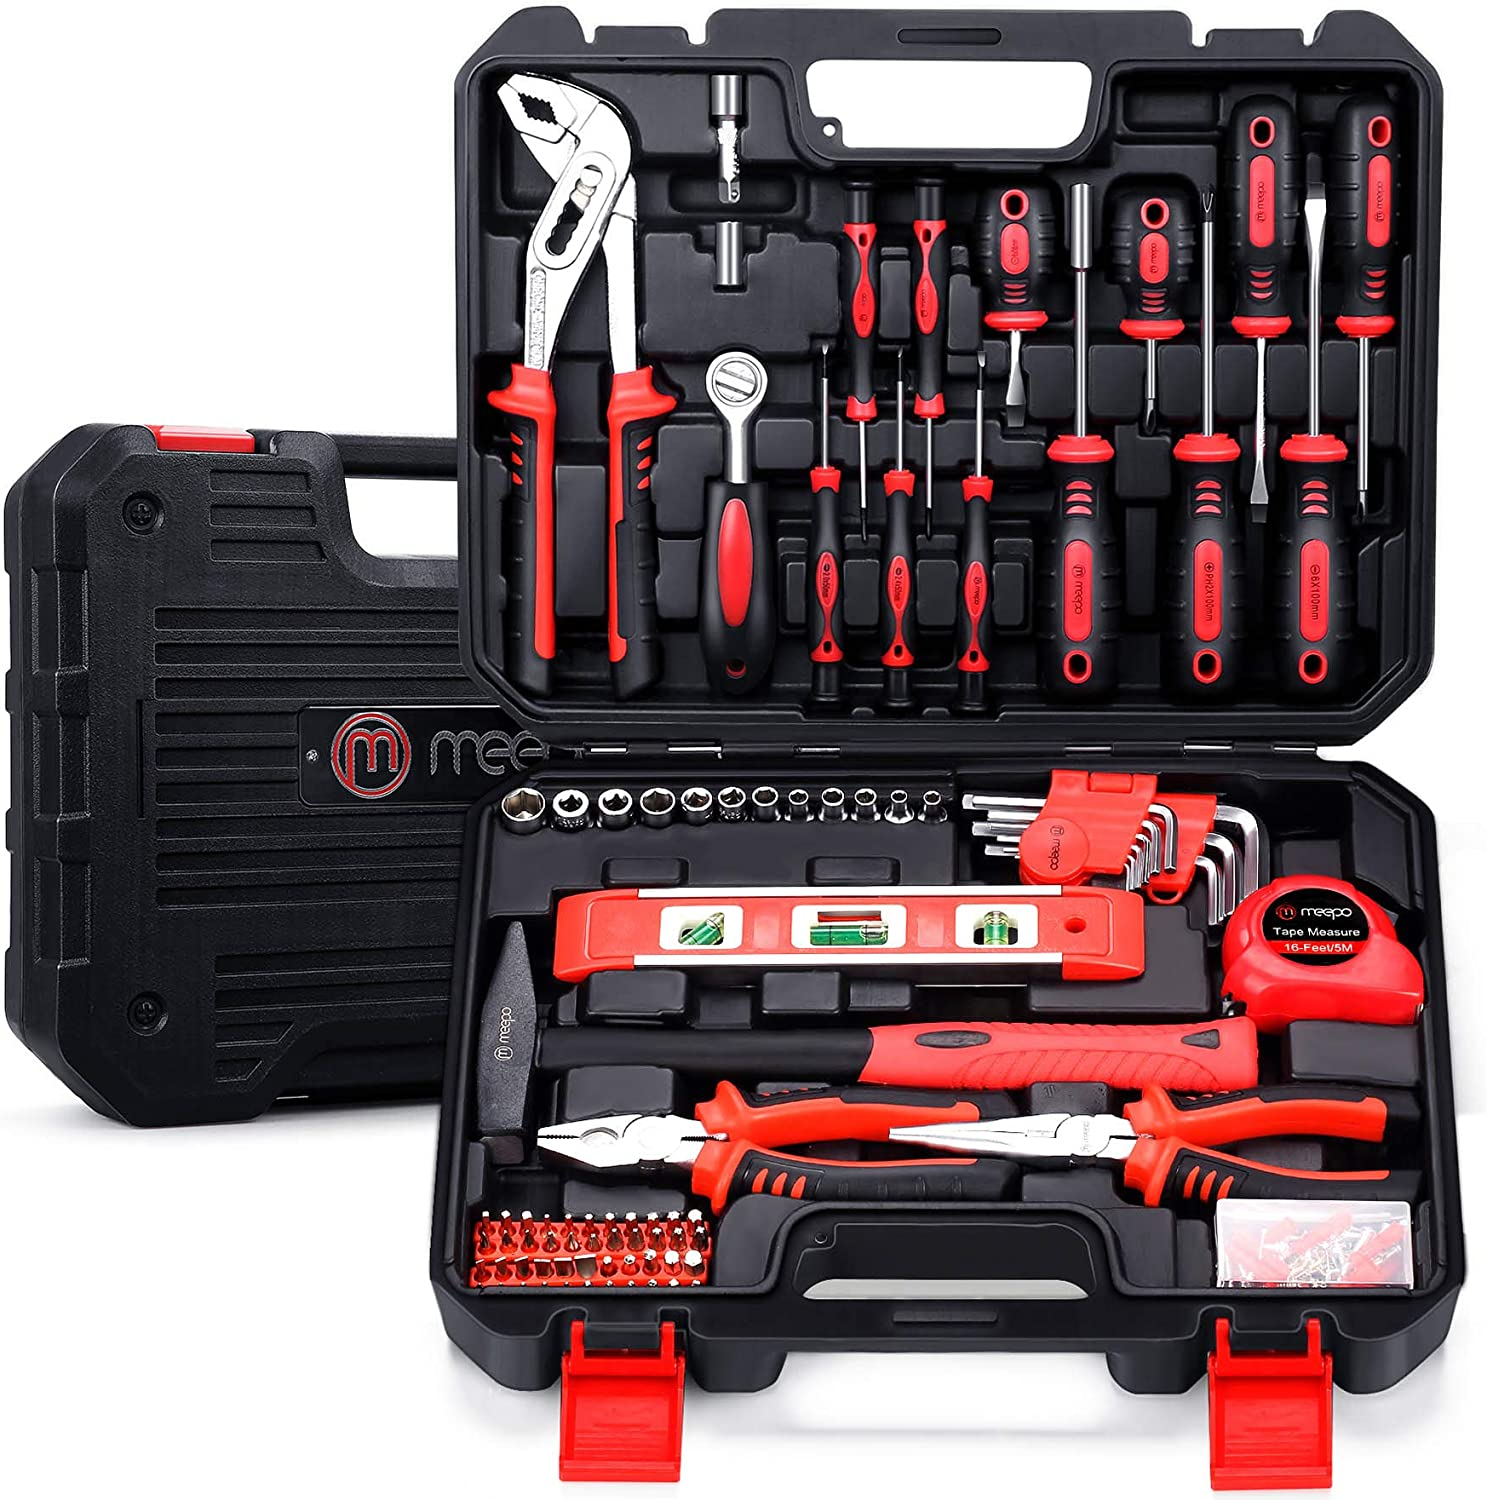 M MEEPO Tool Set, 186-Piece Tool Kit for Men Women Home and Household Repair, Complete Home Tool Kit for DIY, College Students, with Solid Toolbox